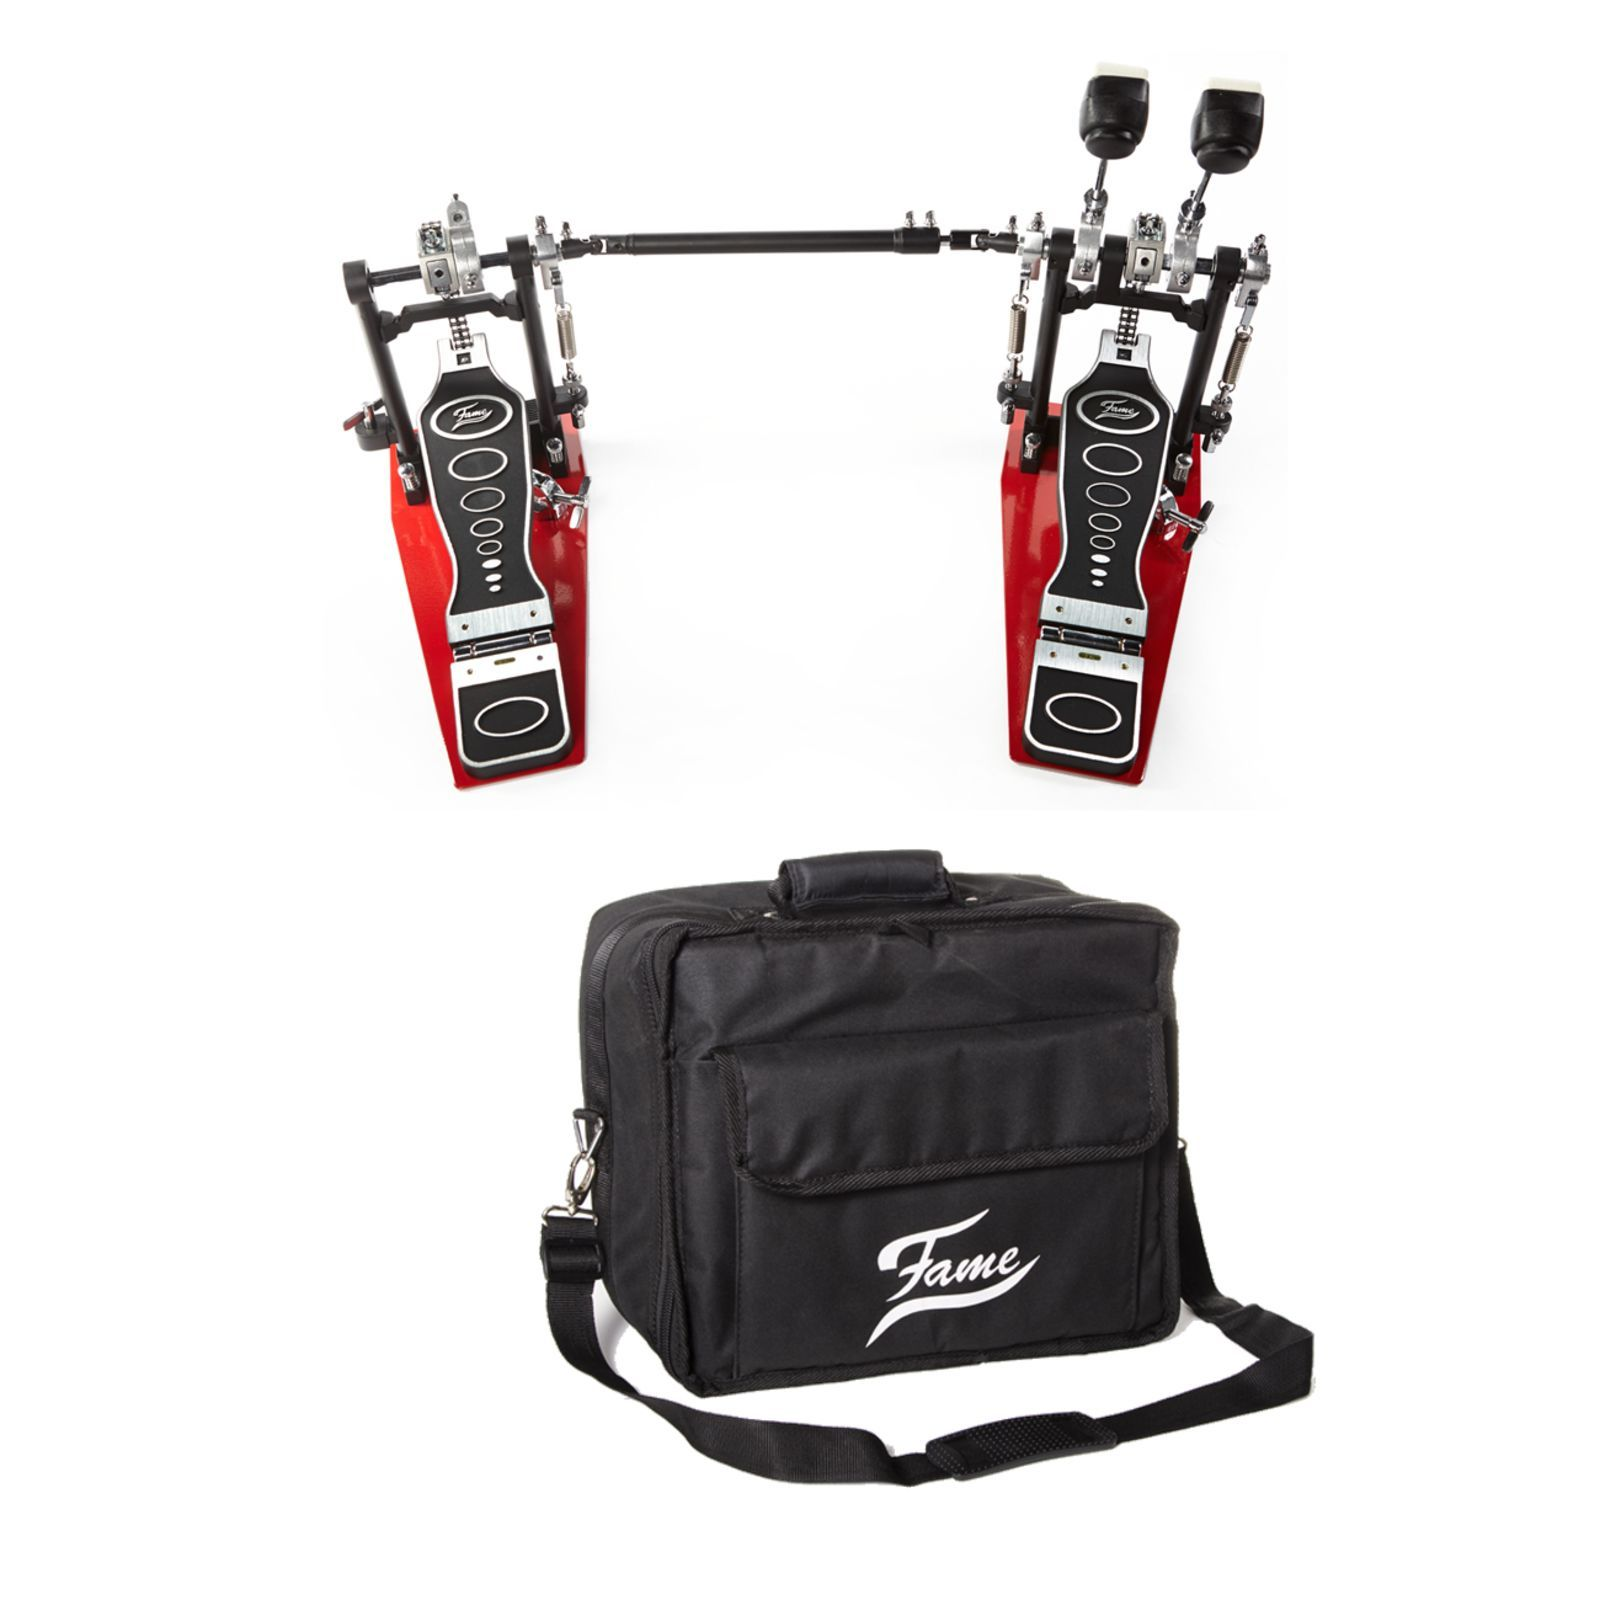 Fame DFP9001 + Bag - SET Produktbild